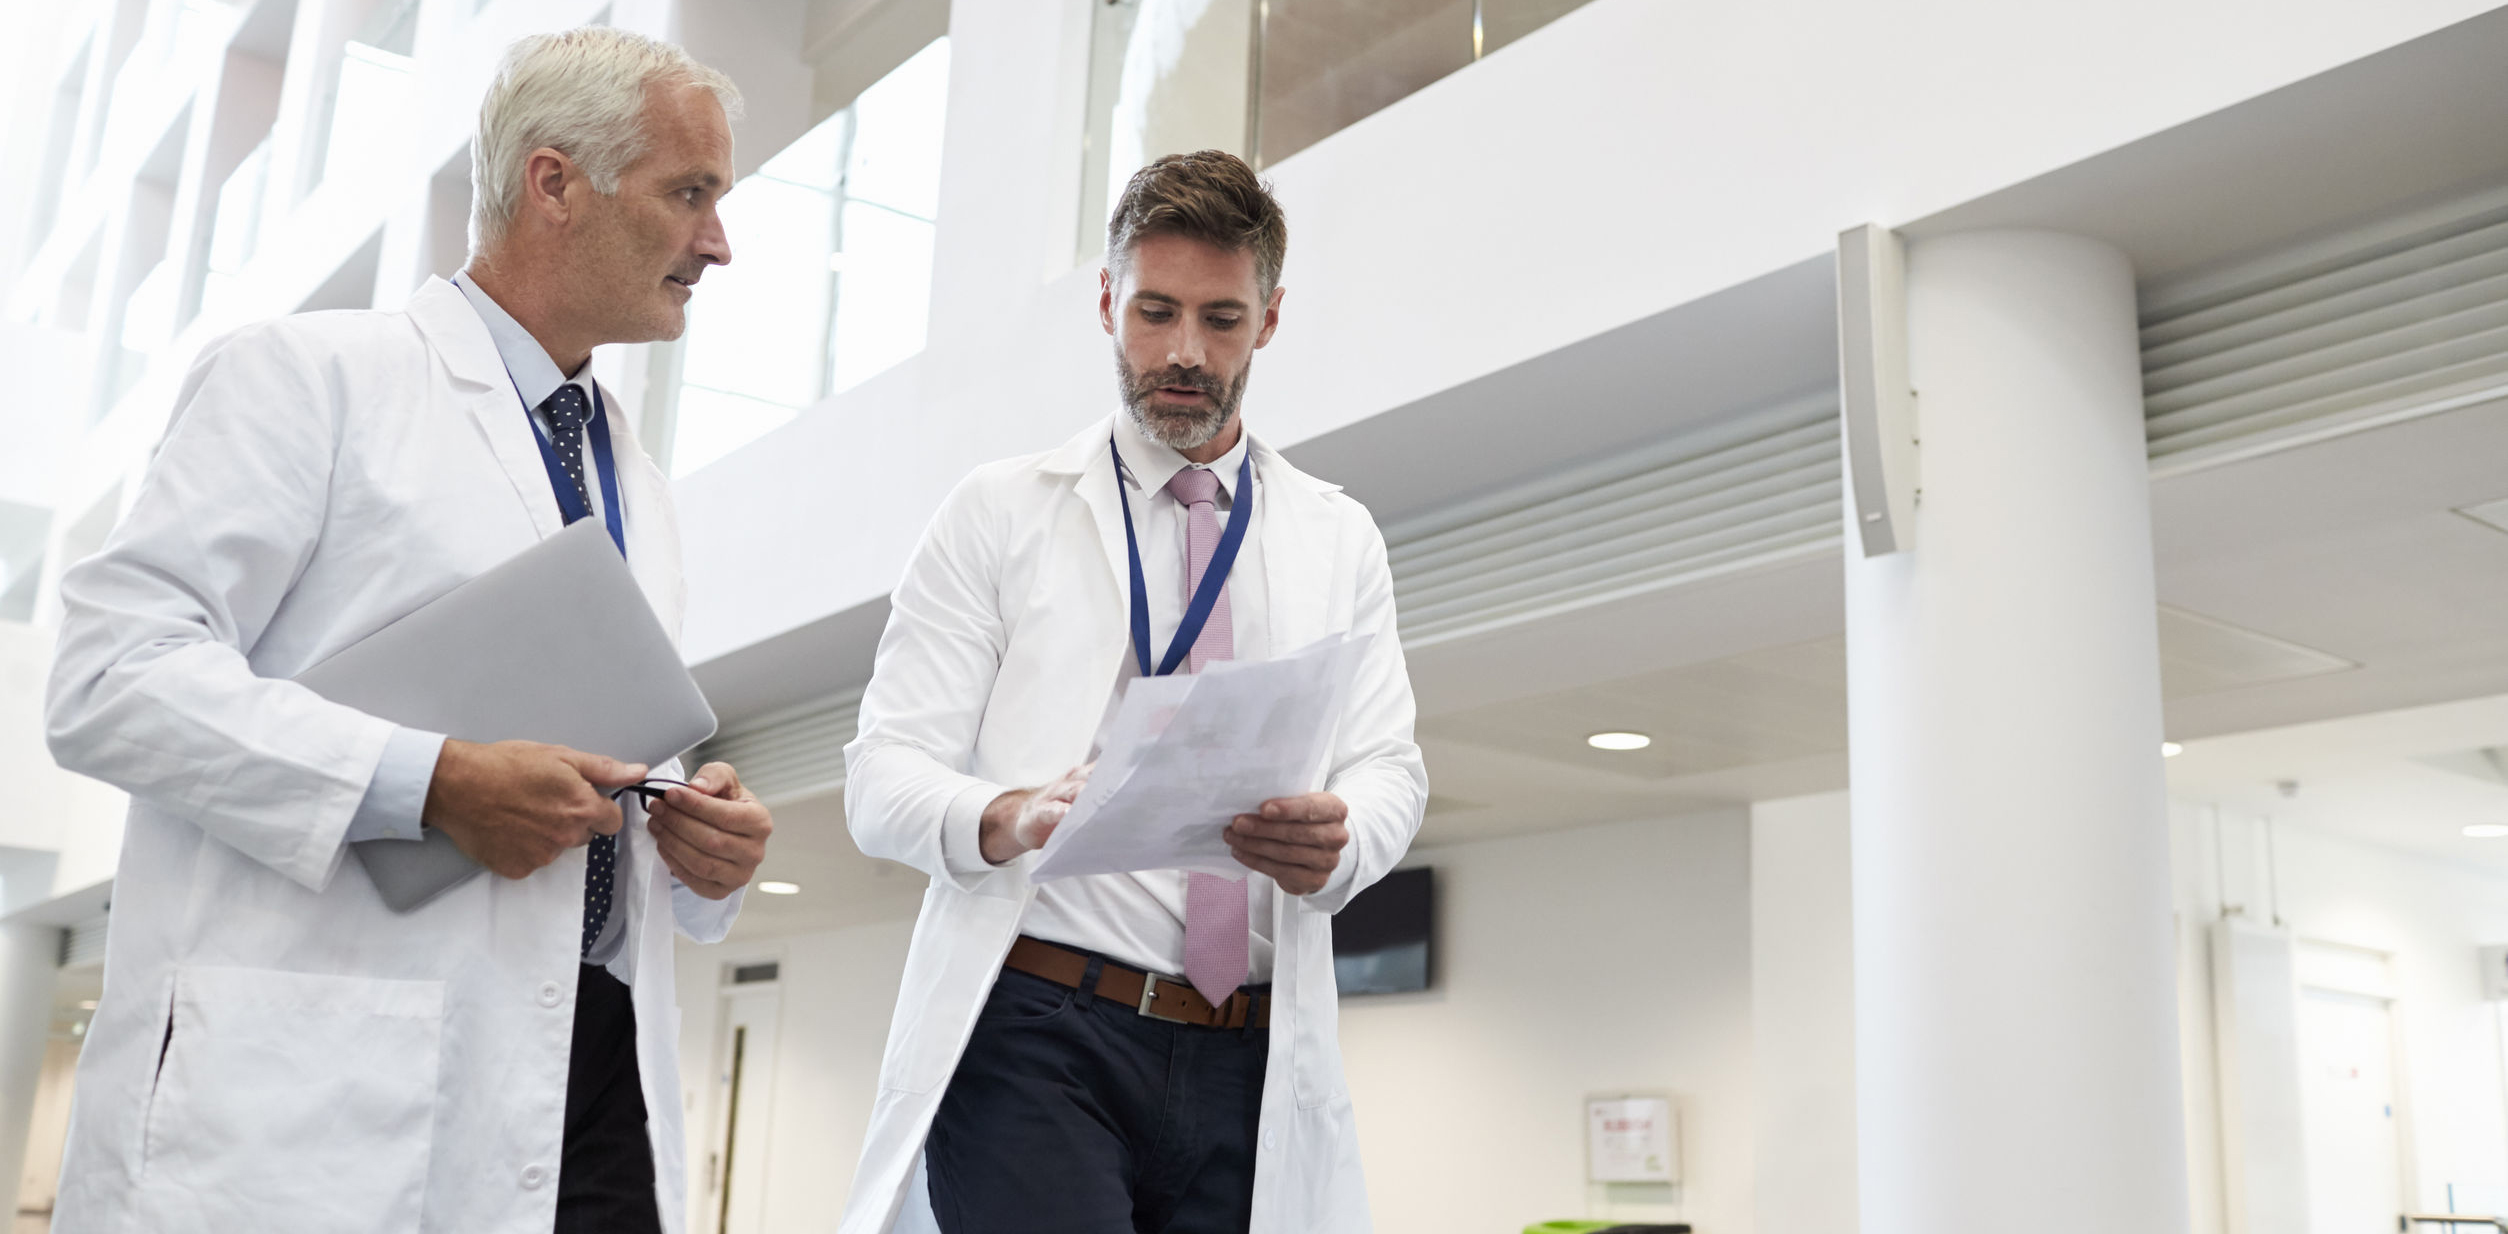 Two Doctors Talking As They Walk Through Modern Hospital